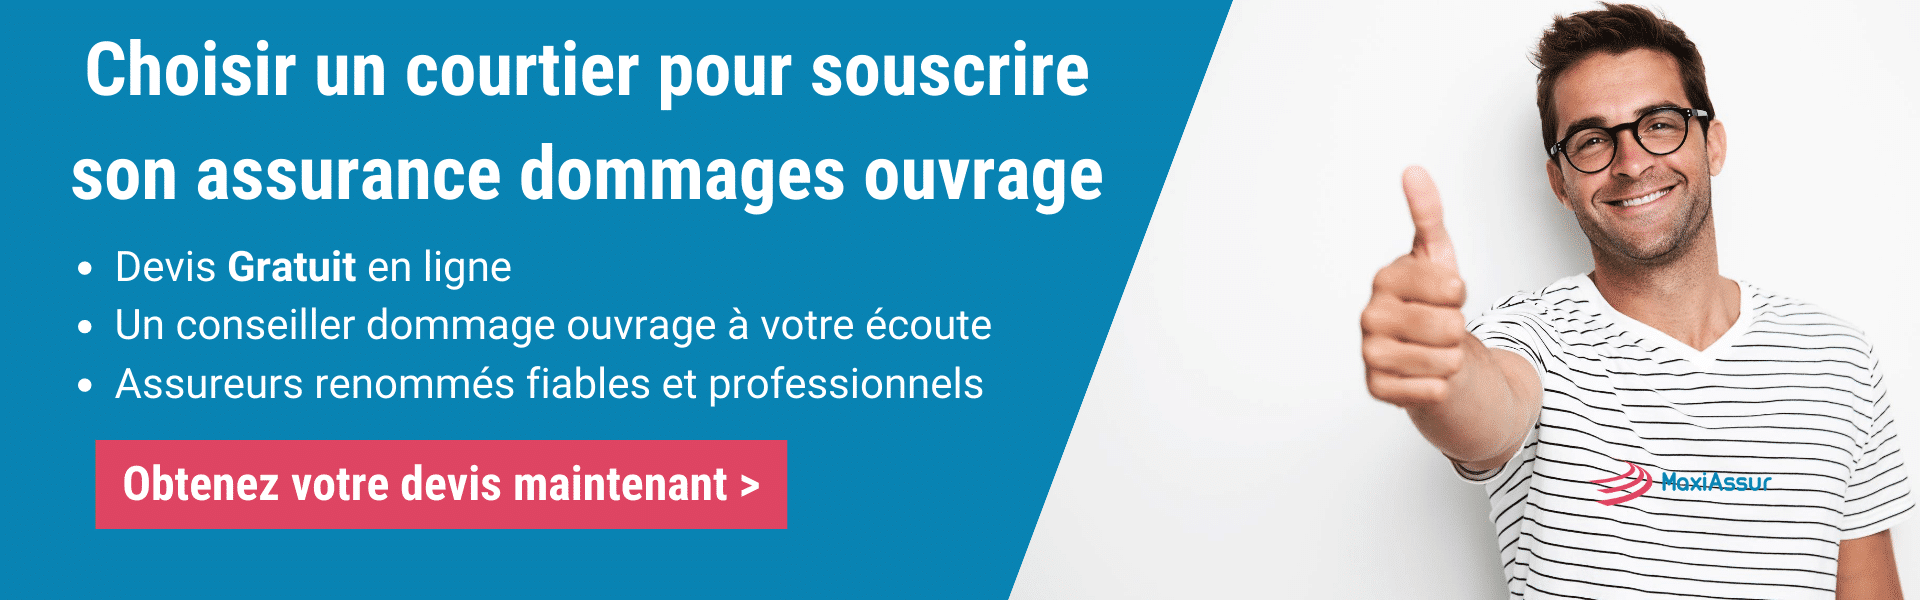 Courtier assurance dommages ouvrage